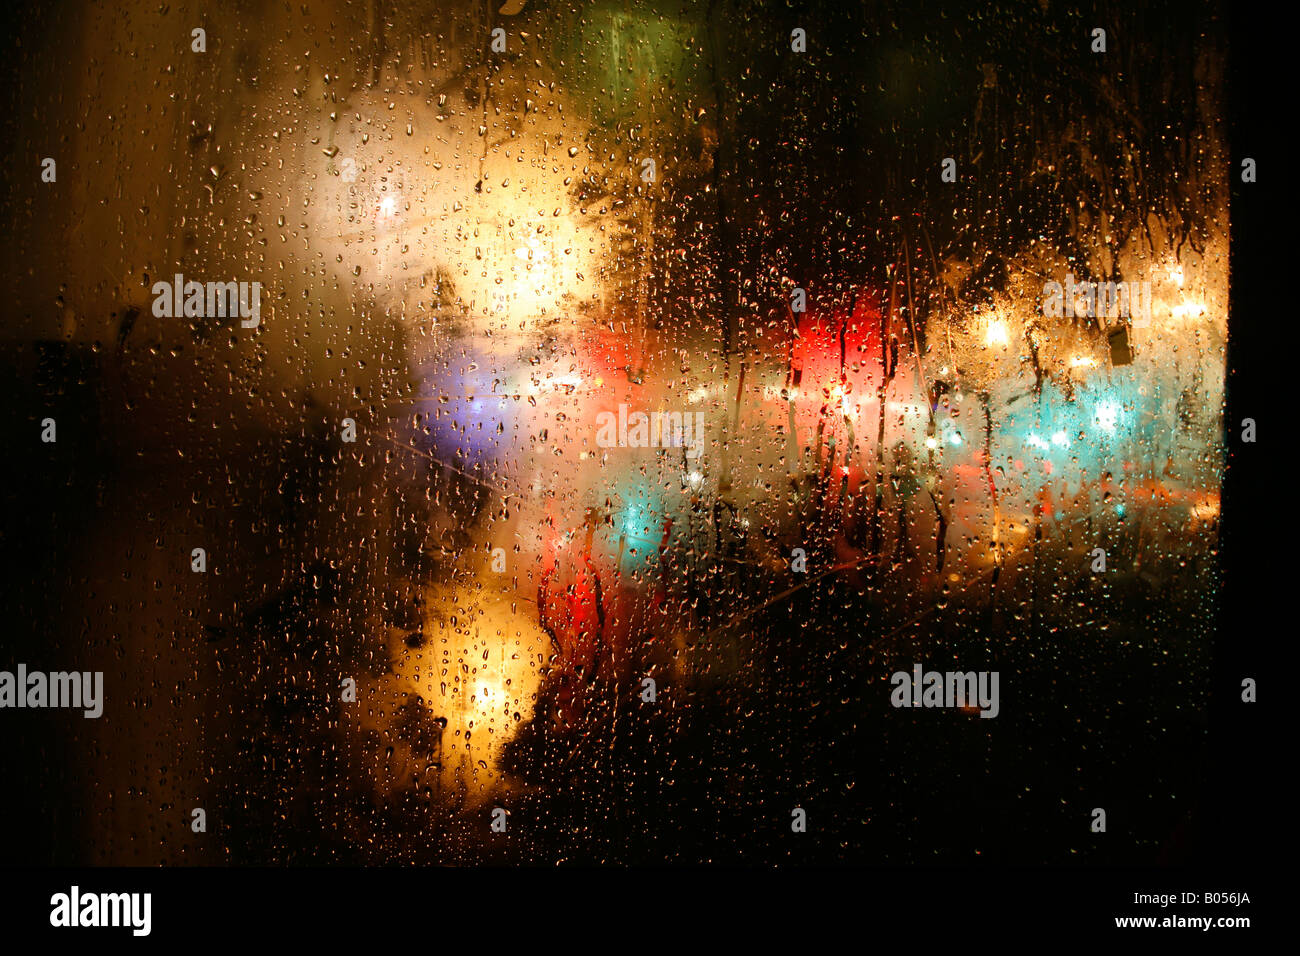 En busca de una lluvia manchada ventana a Harrington Road, South Kensington, Londres Imagen De Stock